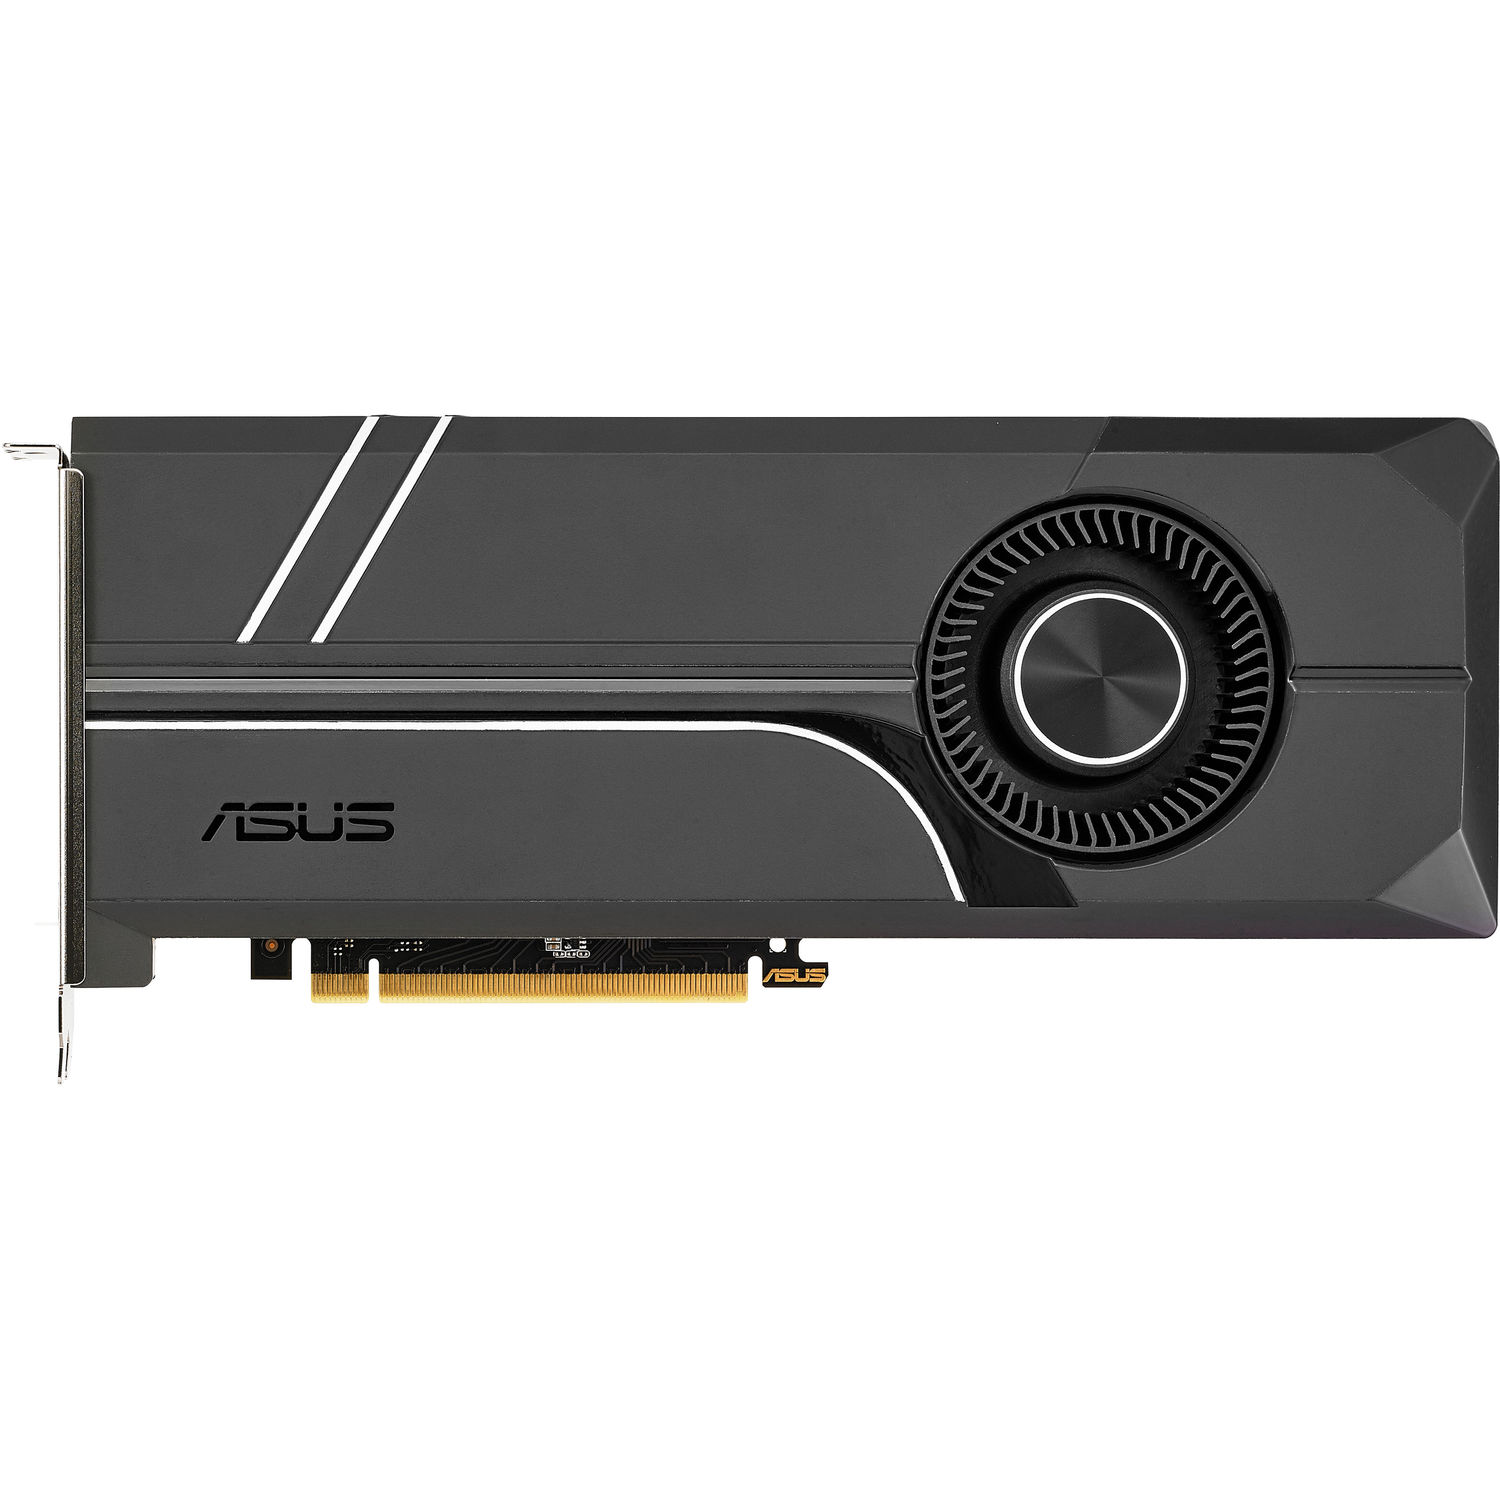 ASUS GeForce GTX 1080 Ti TURBO Graphics Card by ASUS COMPUTER COMPONENTS